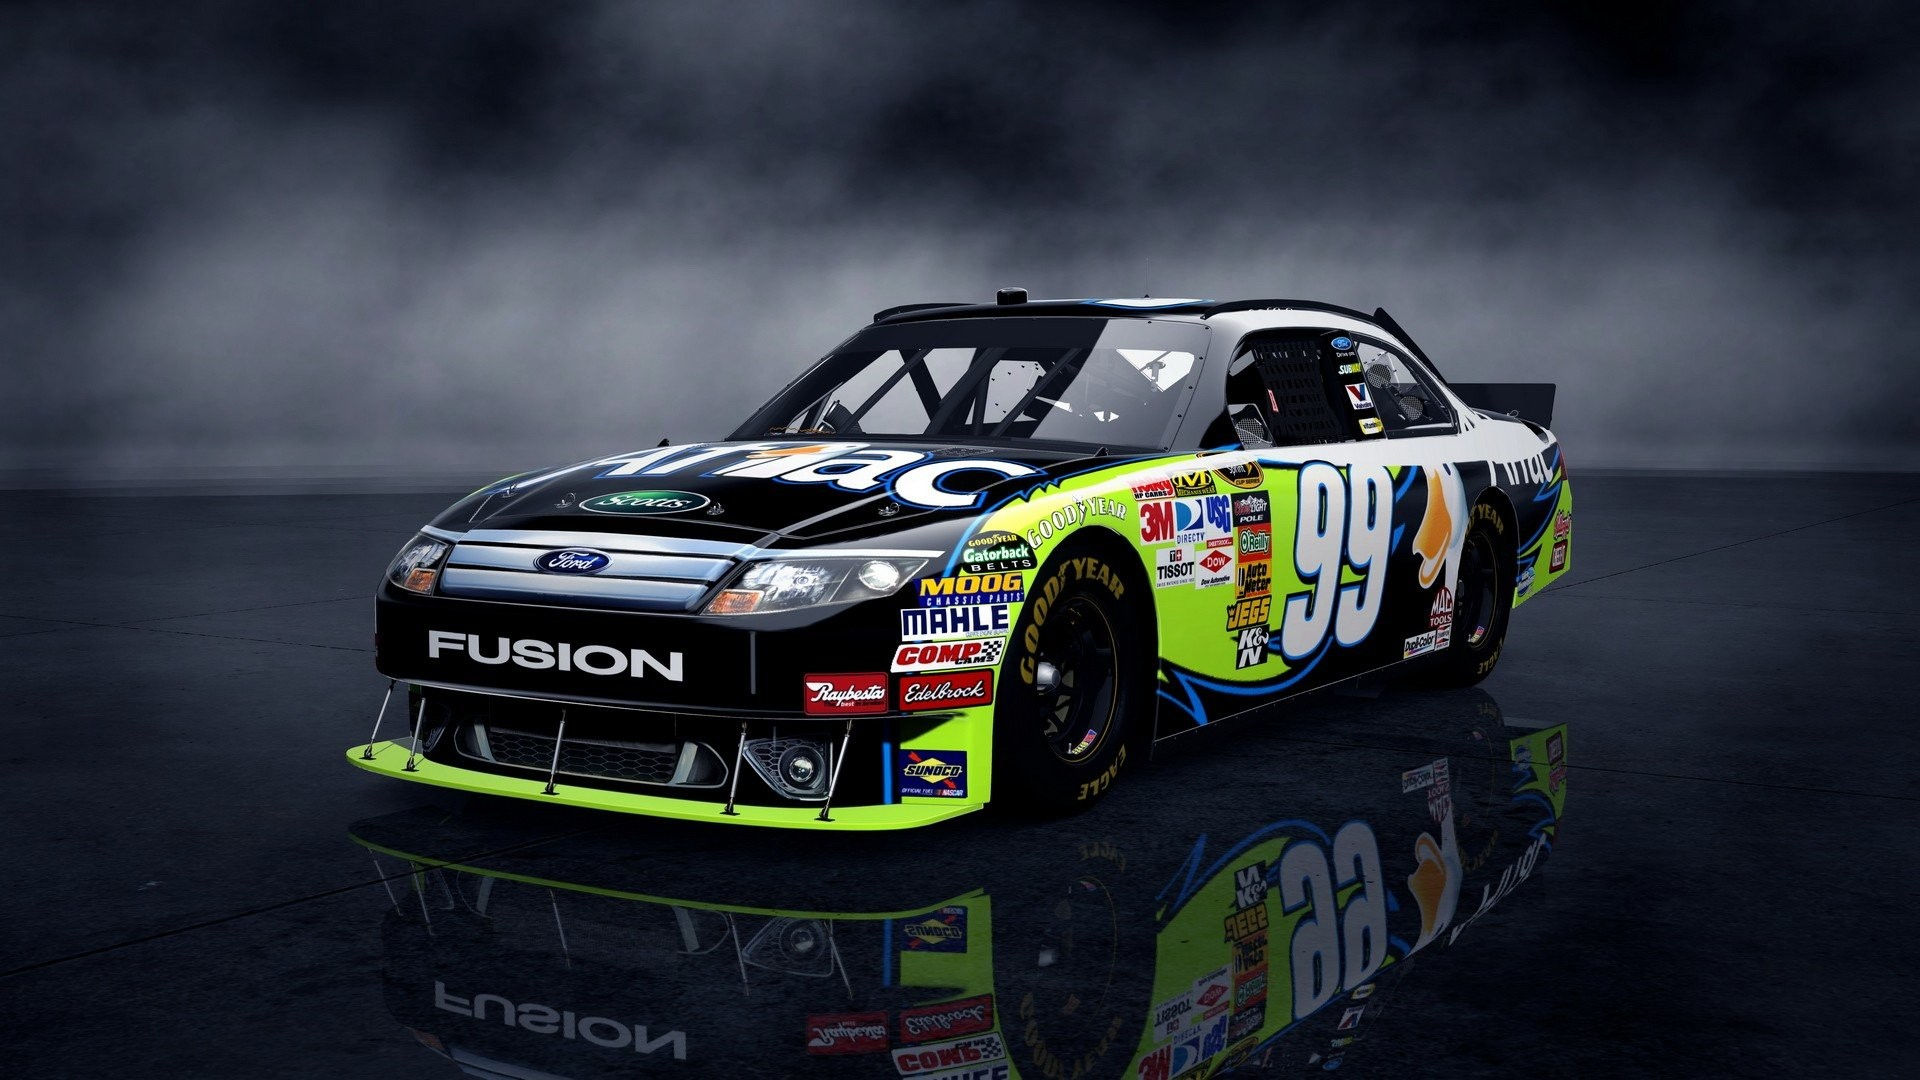 Res: 1920x1080, vehicles Nascar wheels Ford Fusion automobiles wallpaper background